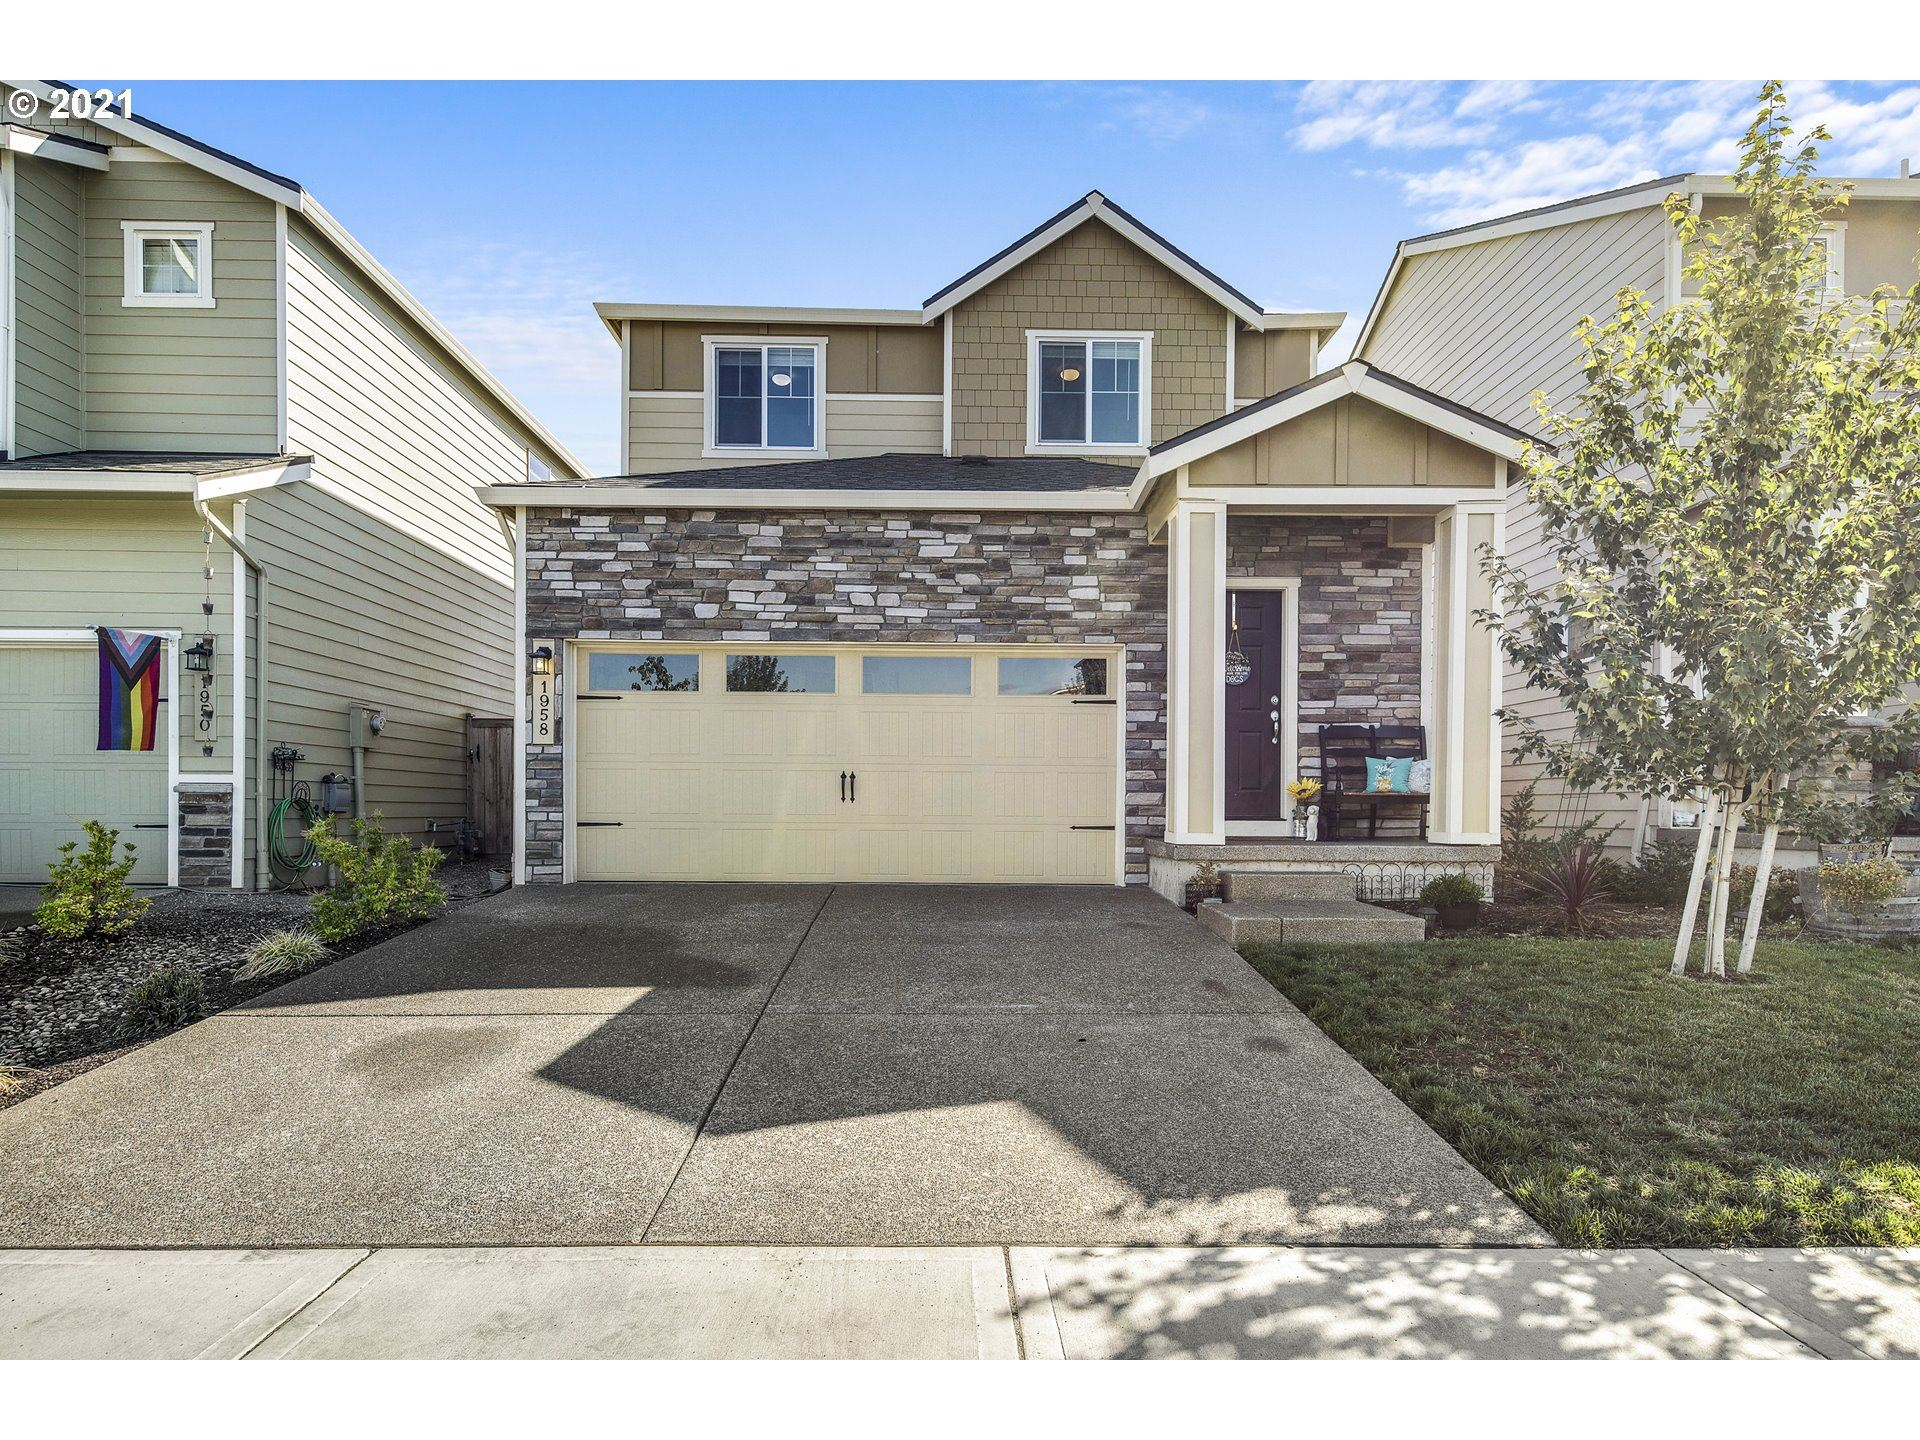 Photo of 1958 NW 21st ST, McMinnville, OR 97128 (MLS # 21417327)